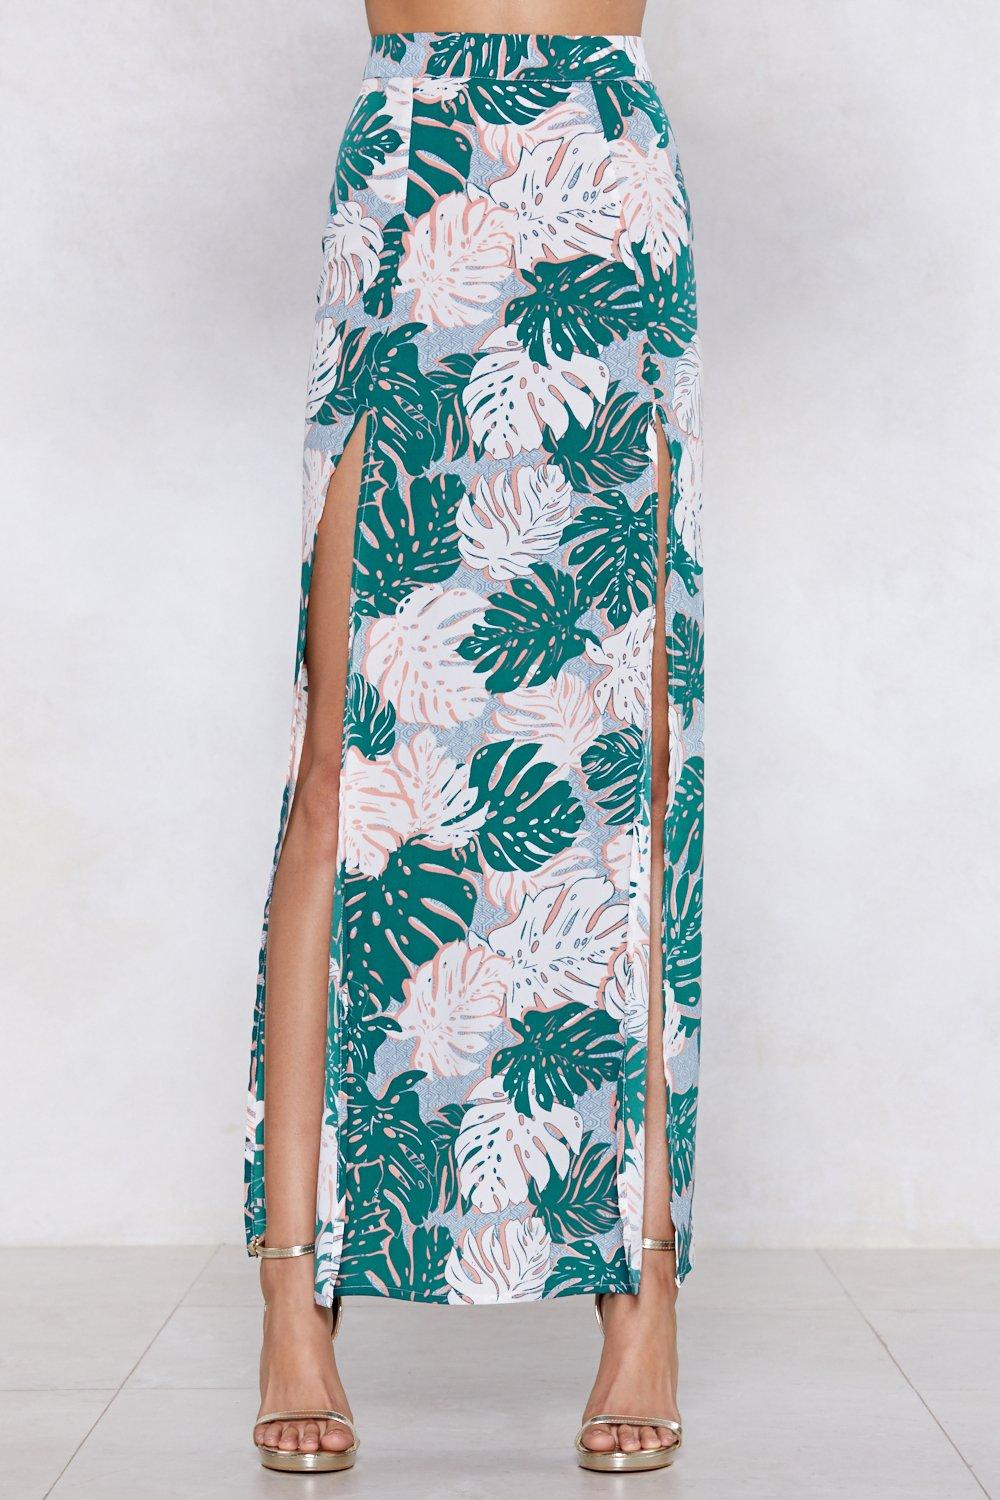 db1de49d5cd Womens Green Palm Inside the Storm Maxi Skirt. Hover to zoom